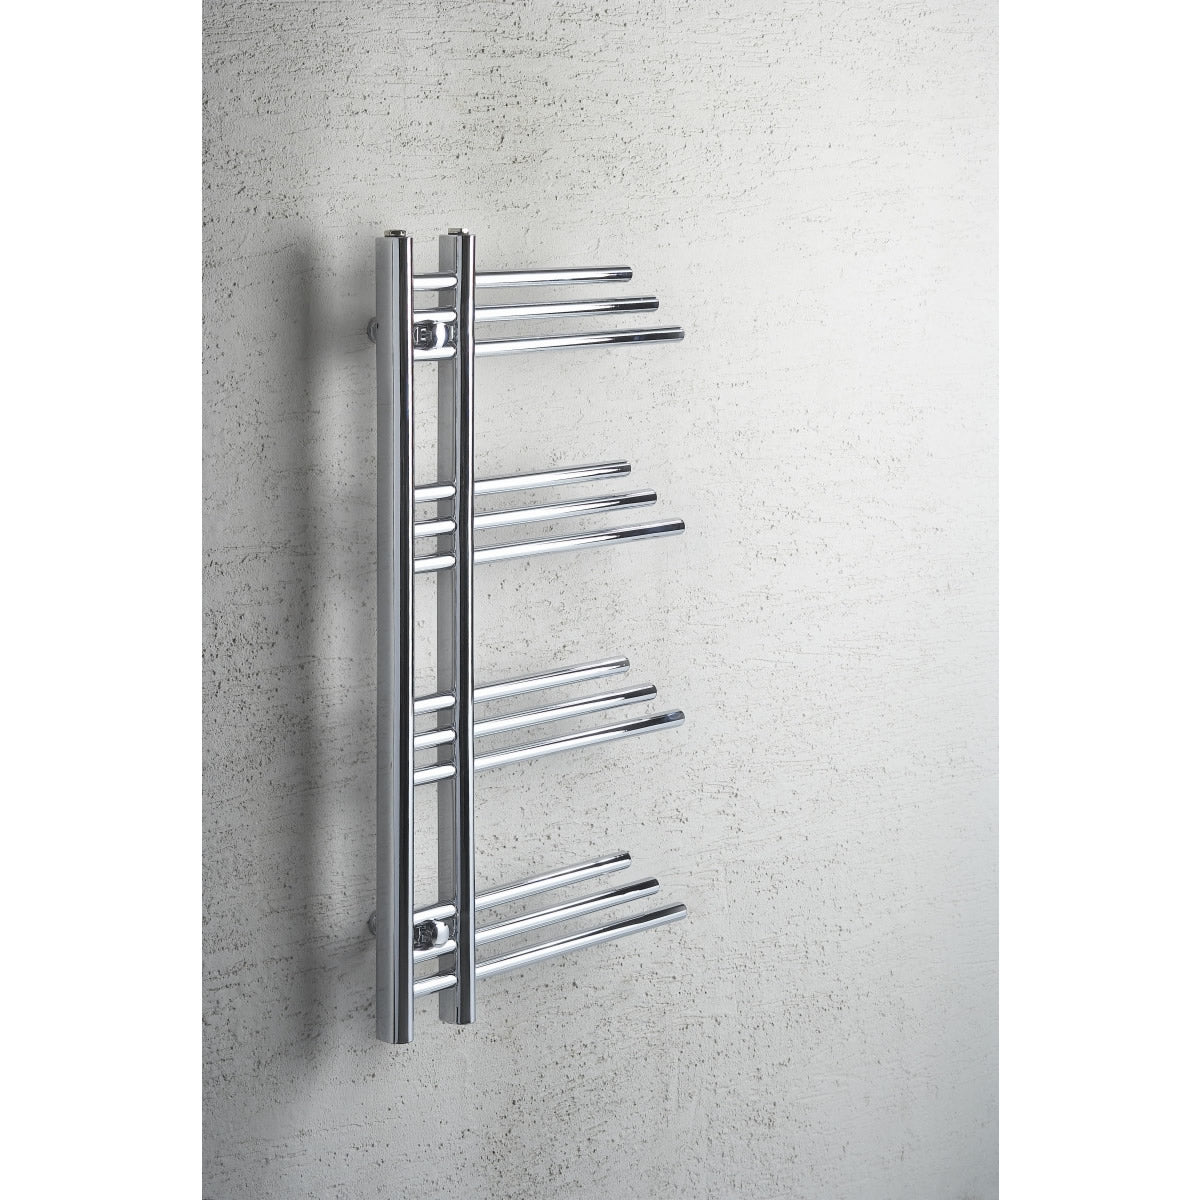 500mm Wide 900mm High Chrome Towel Rail Radiator